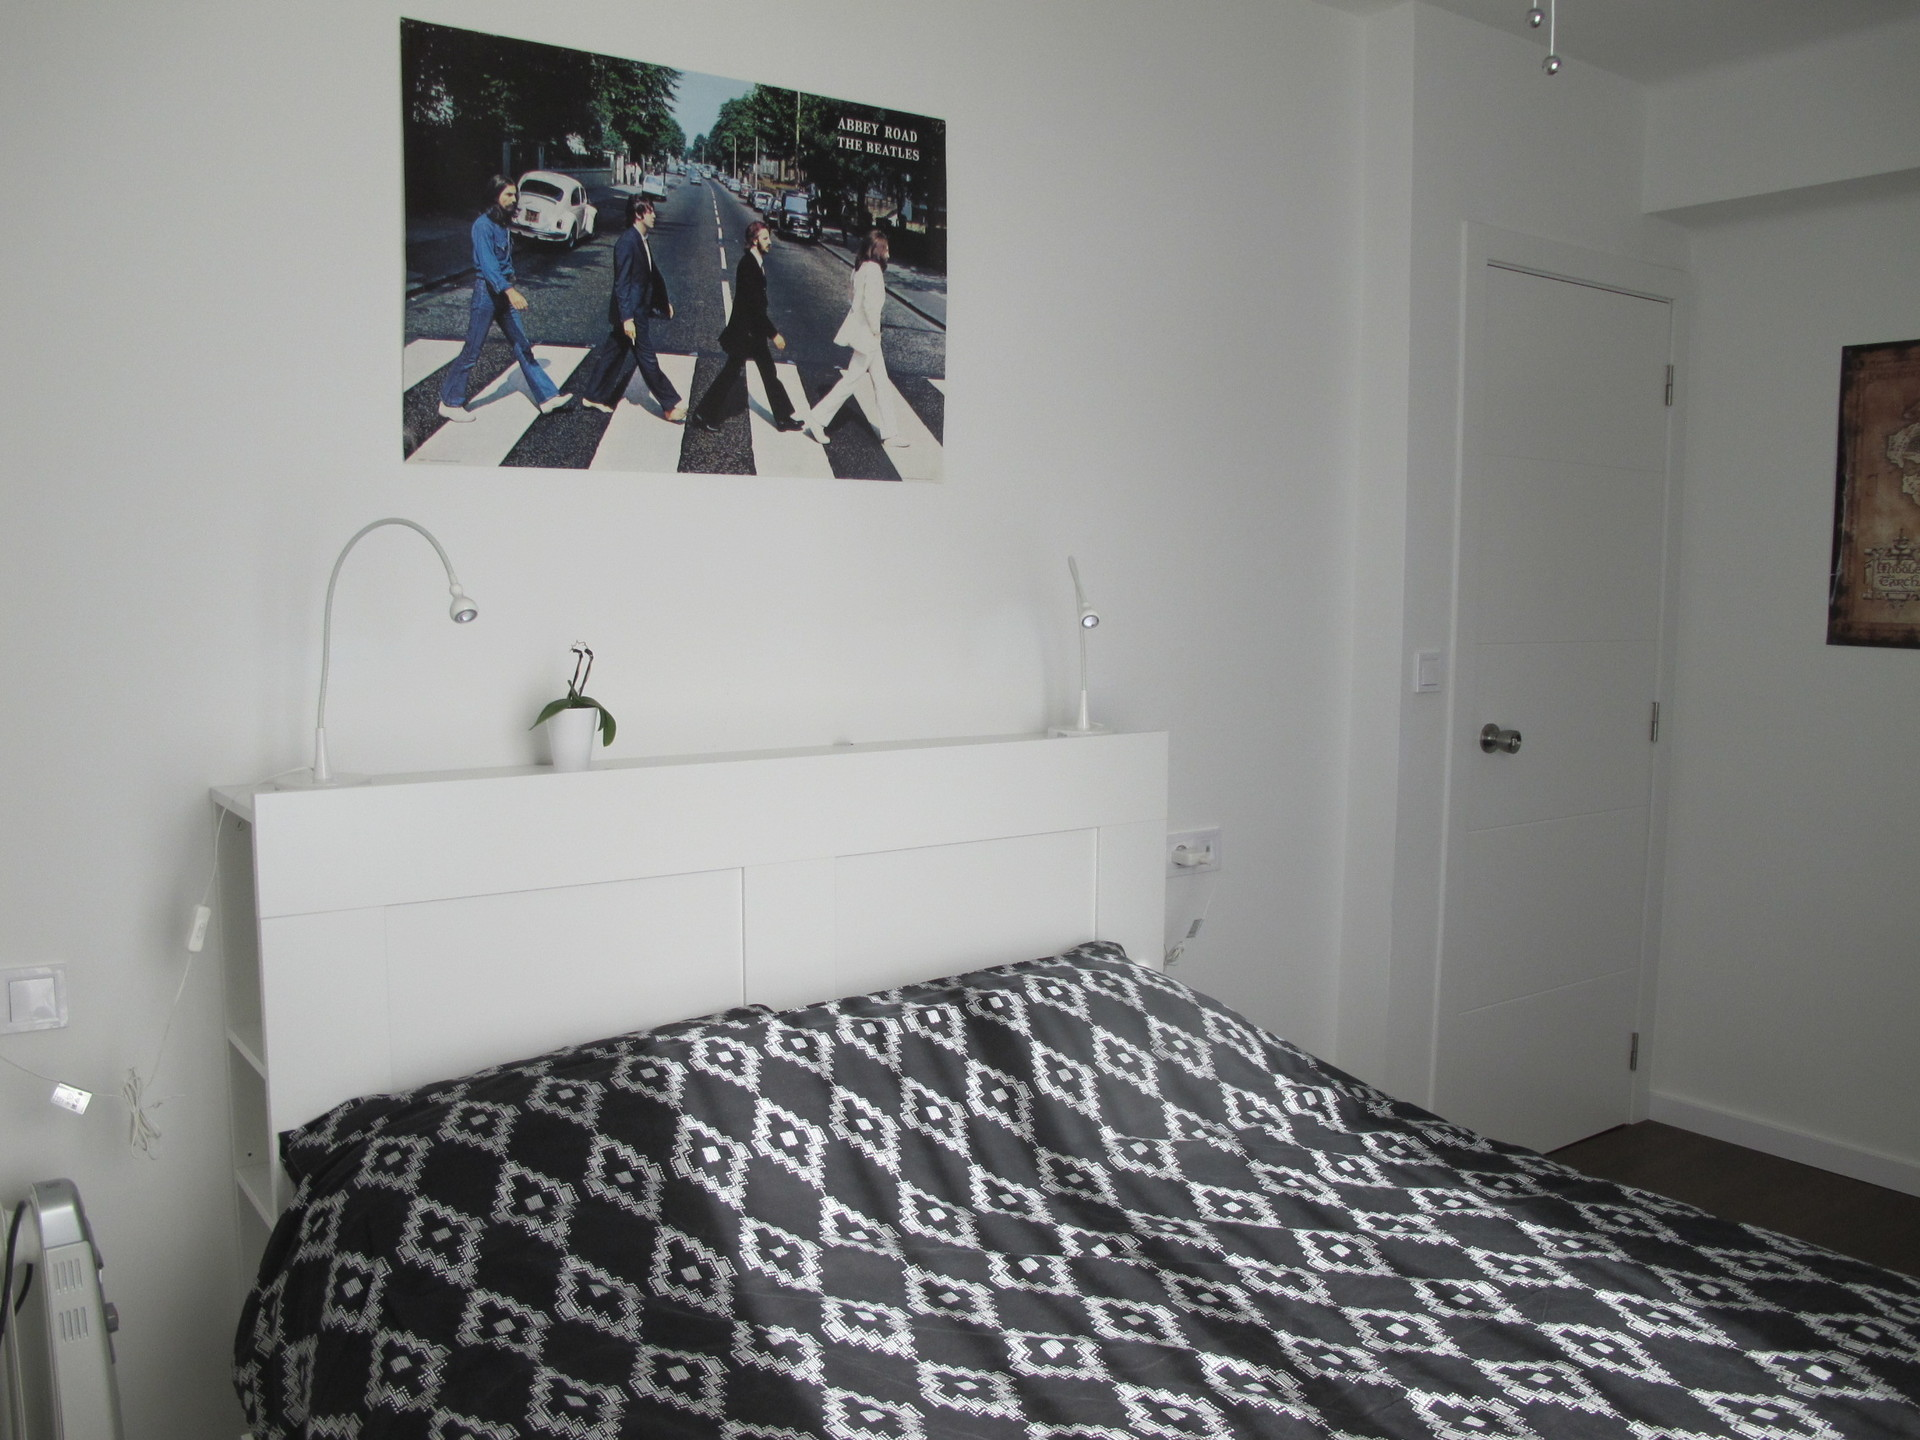 2 Rooms To Rent From July 1st In A Beautiful Flat Burjassot